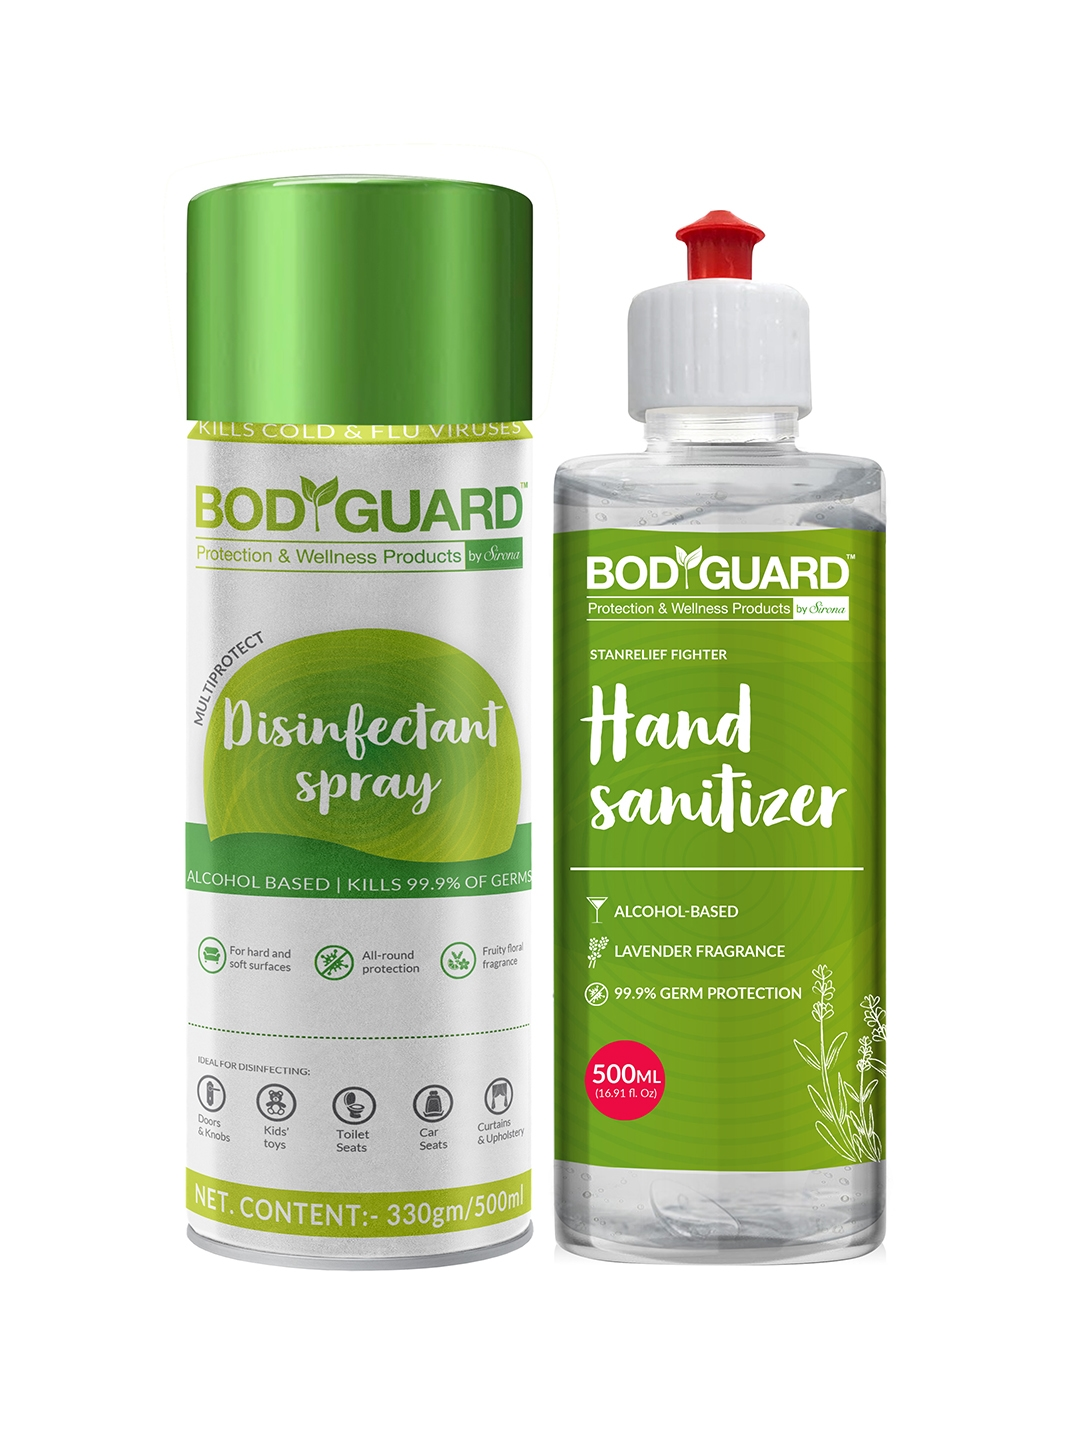 BOD GUARD Set of Alcohol Based Disinfectant Spray   500 ml, Hand Sanitizer   500 ml